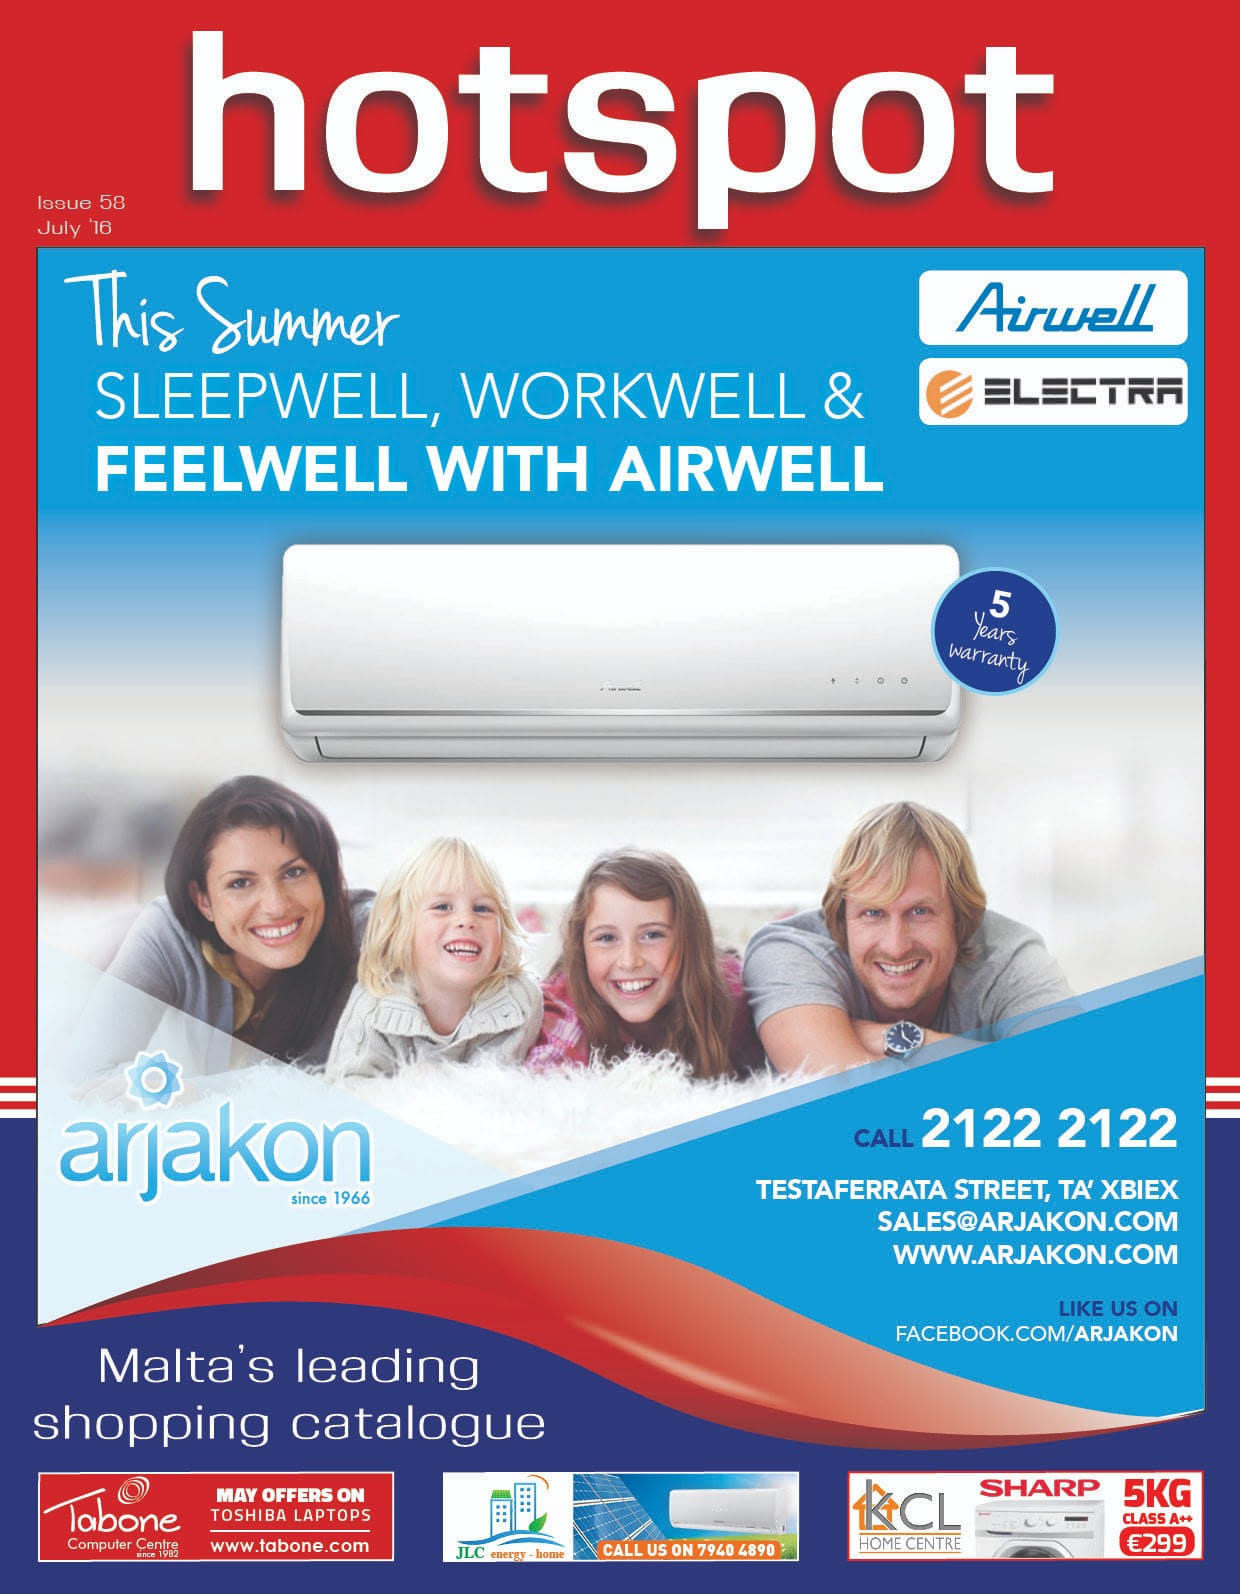 Arjakon Co Ltd - Air Conditioners